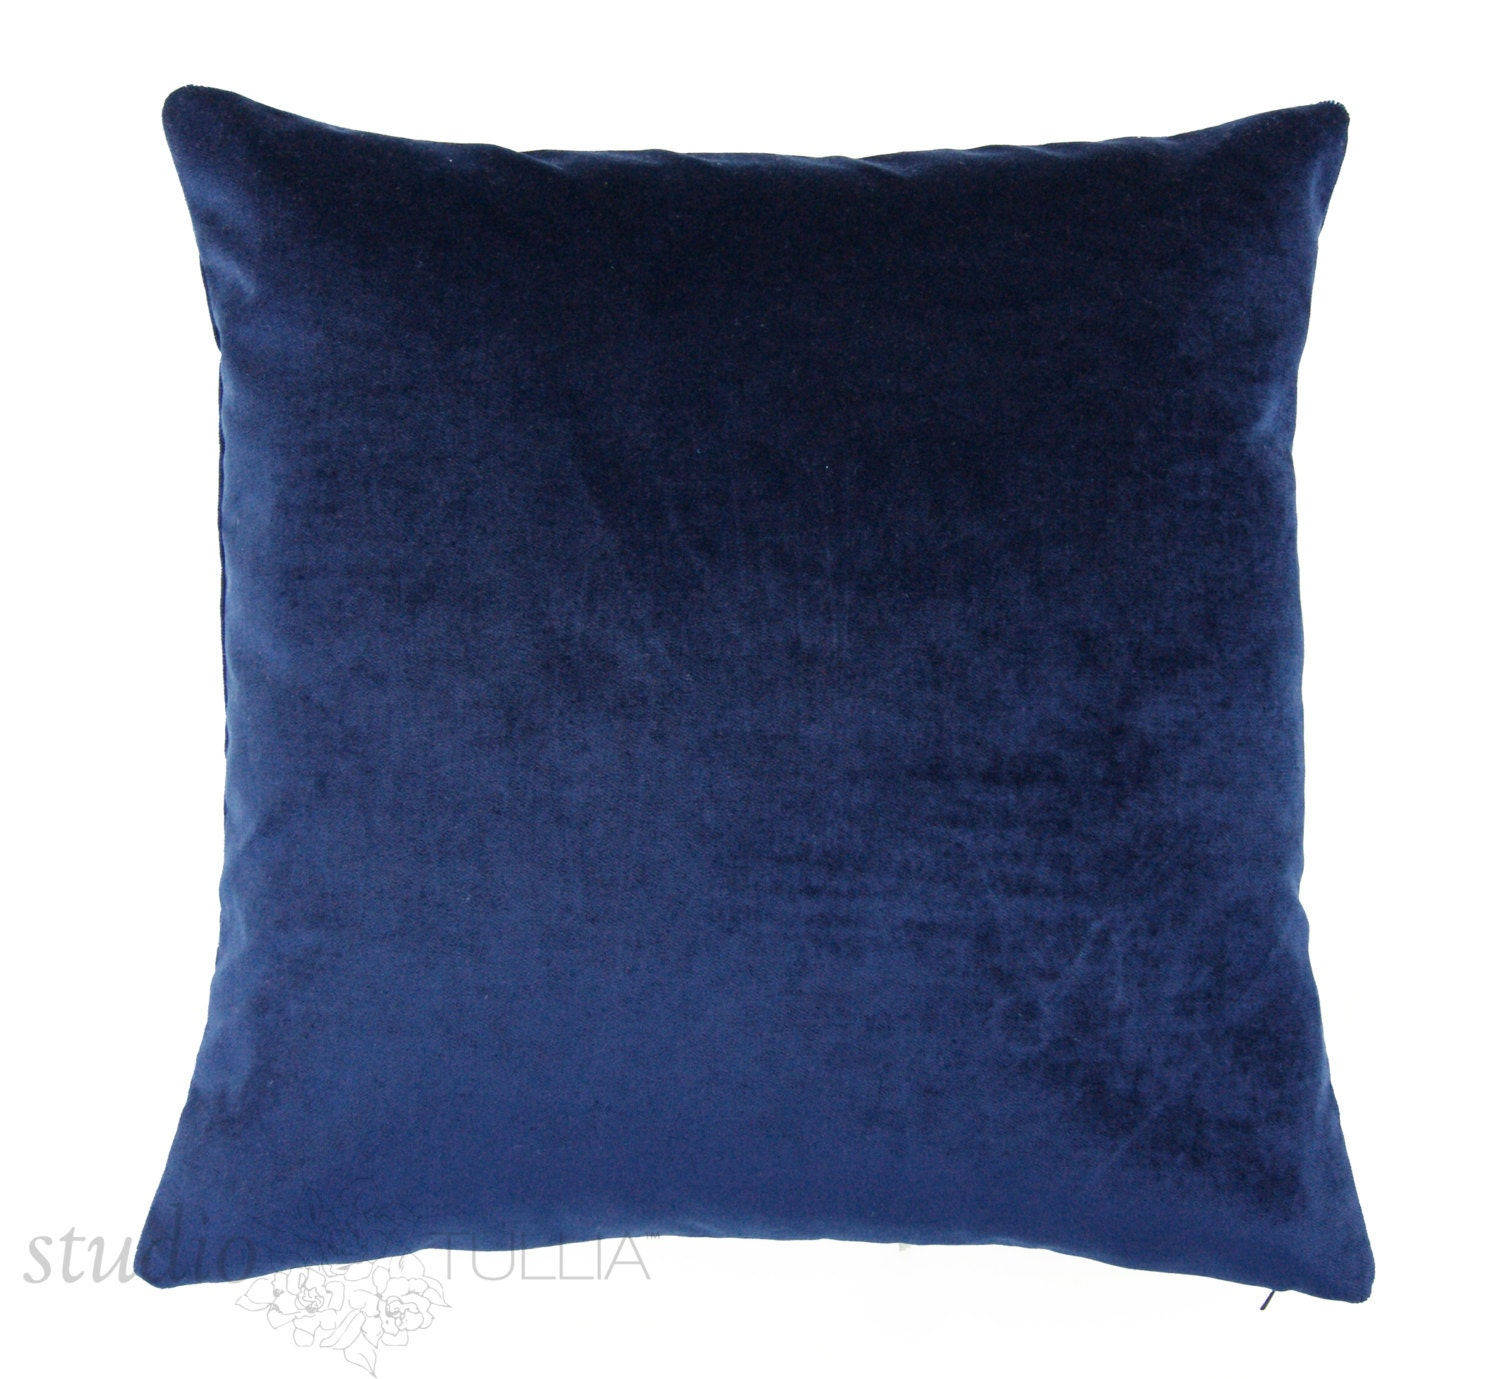 Velvet Pillow Cover 20 inch Midnight Blue Decorative